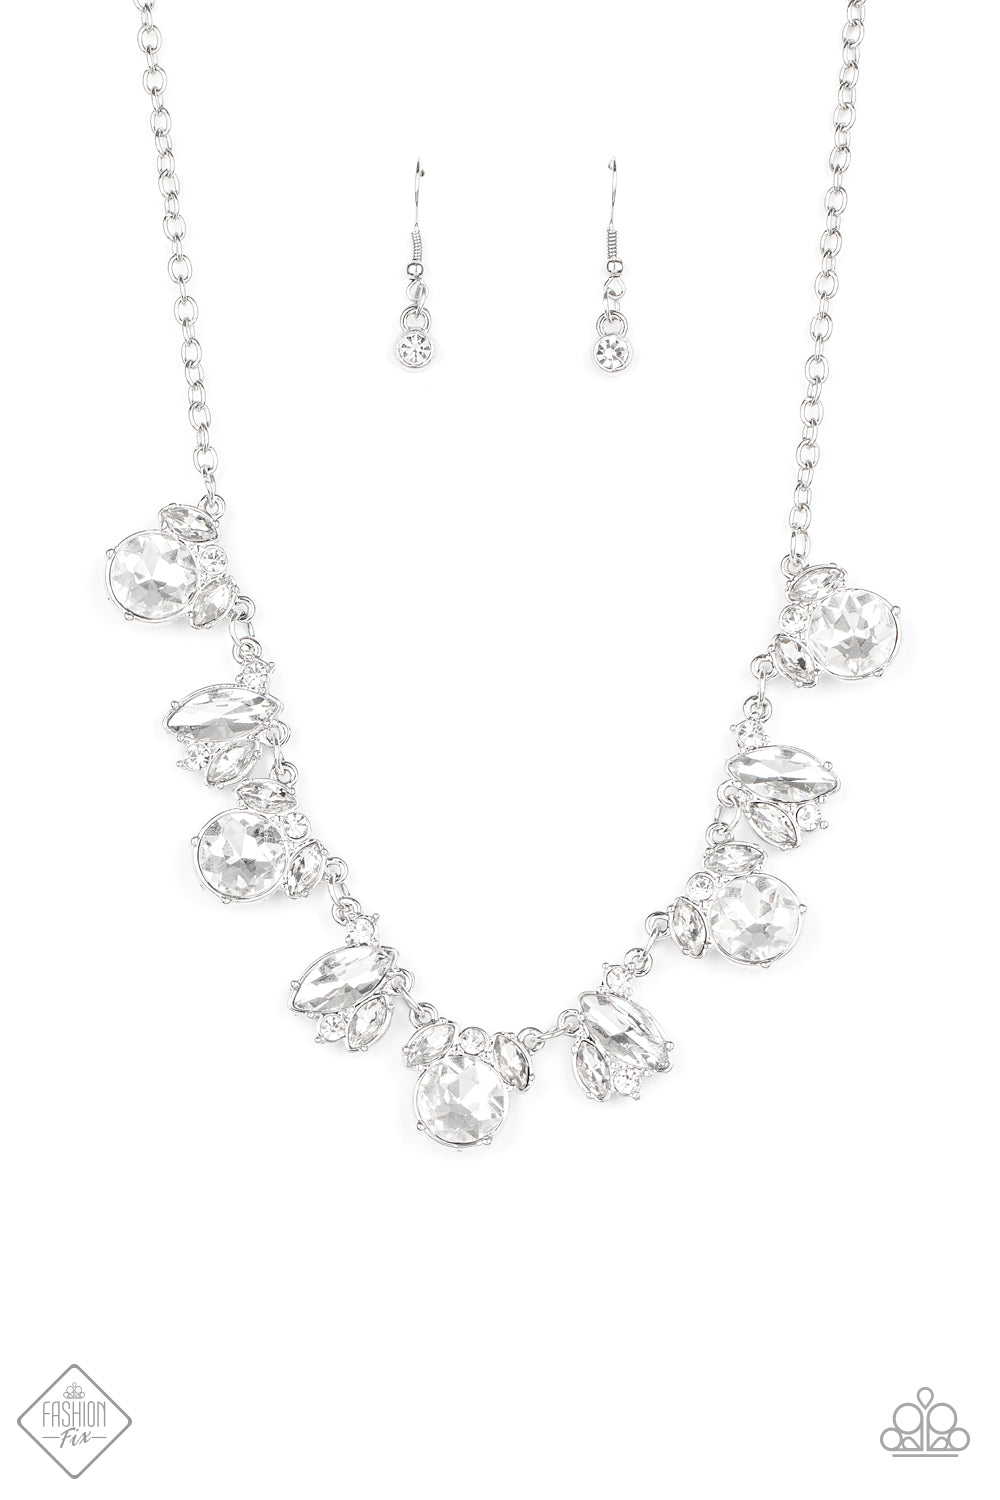 Paparazzi Necklace ~ BLING to Attention - White - Fashion Fix Sept 2020